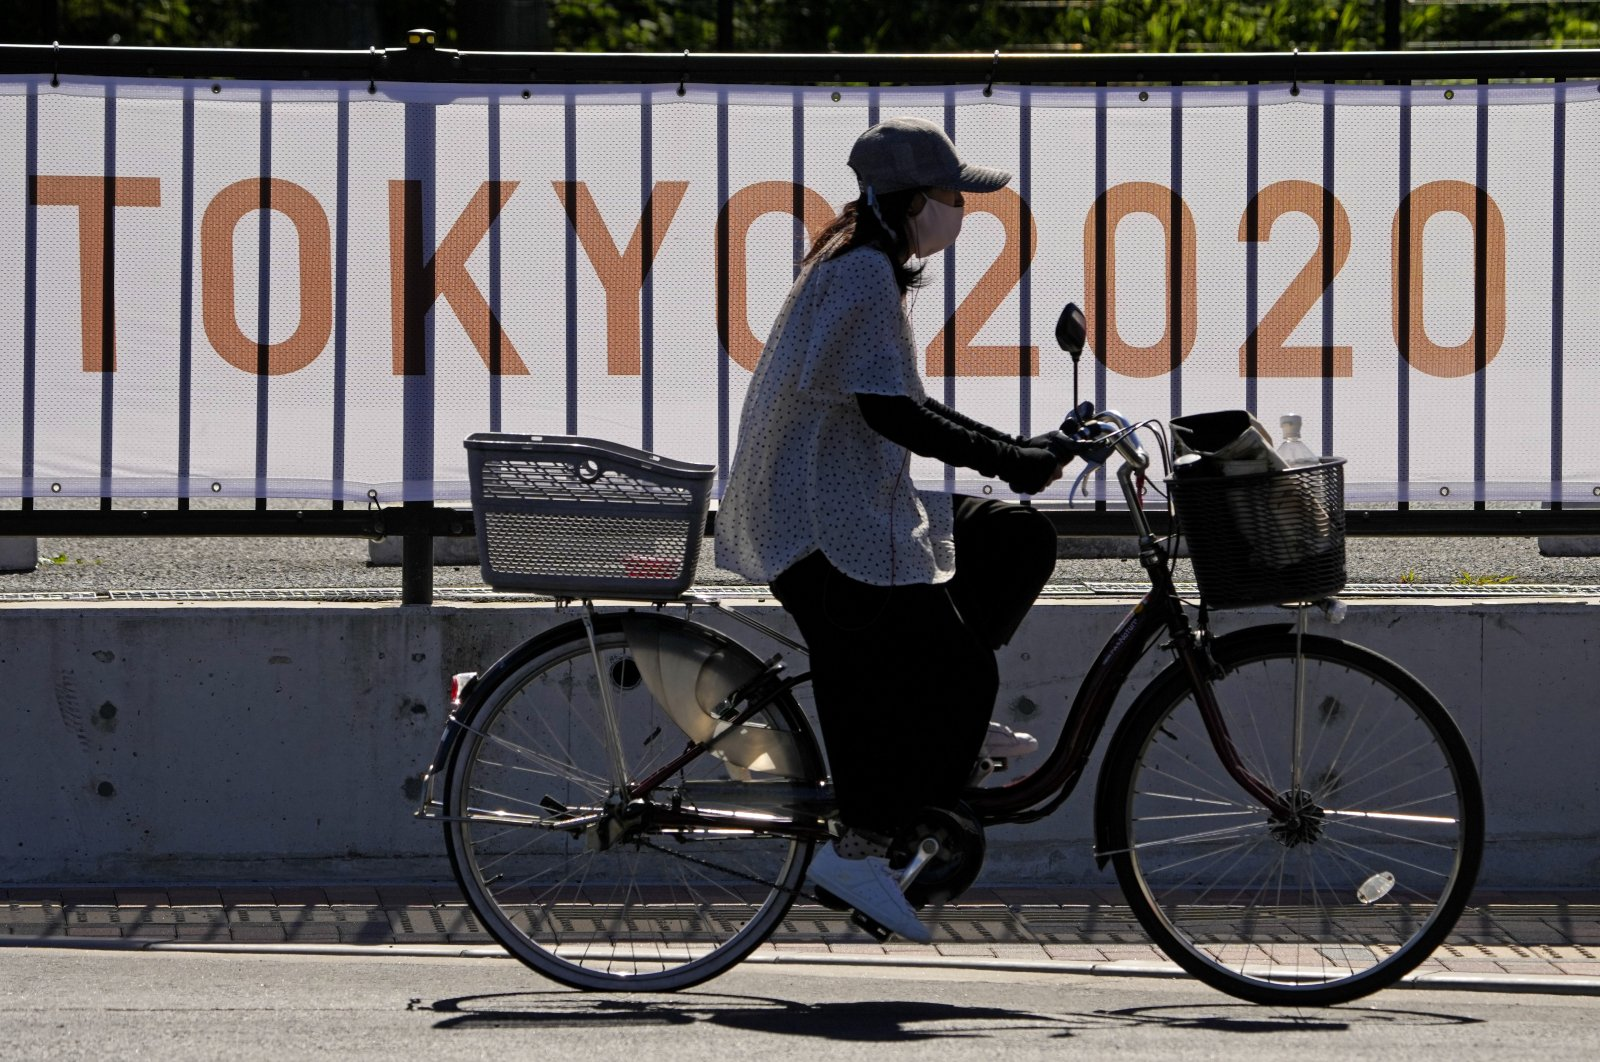 A woman rides her bike past signage for the 2020 Summer Olympics, Tokyo, Japan, July 18, 2021. (AP Photo)